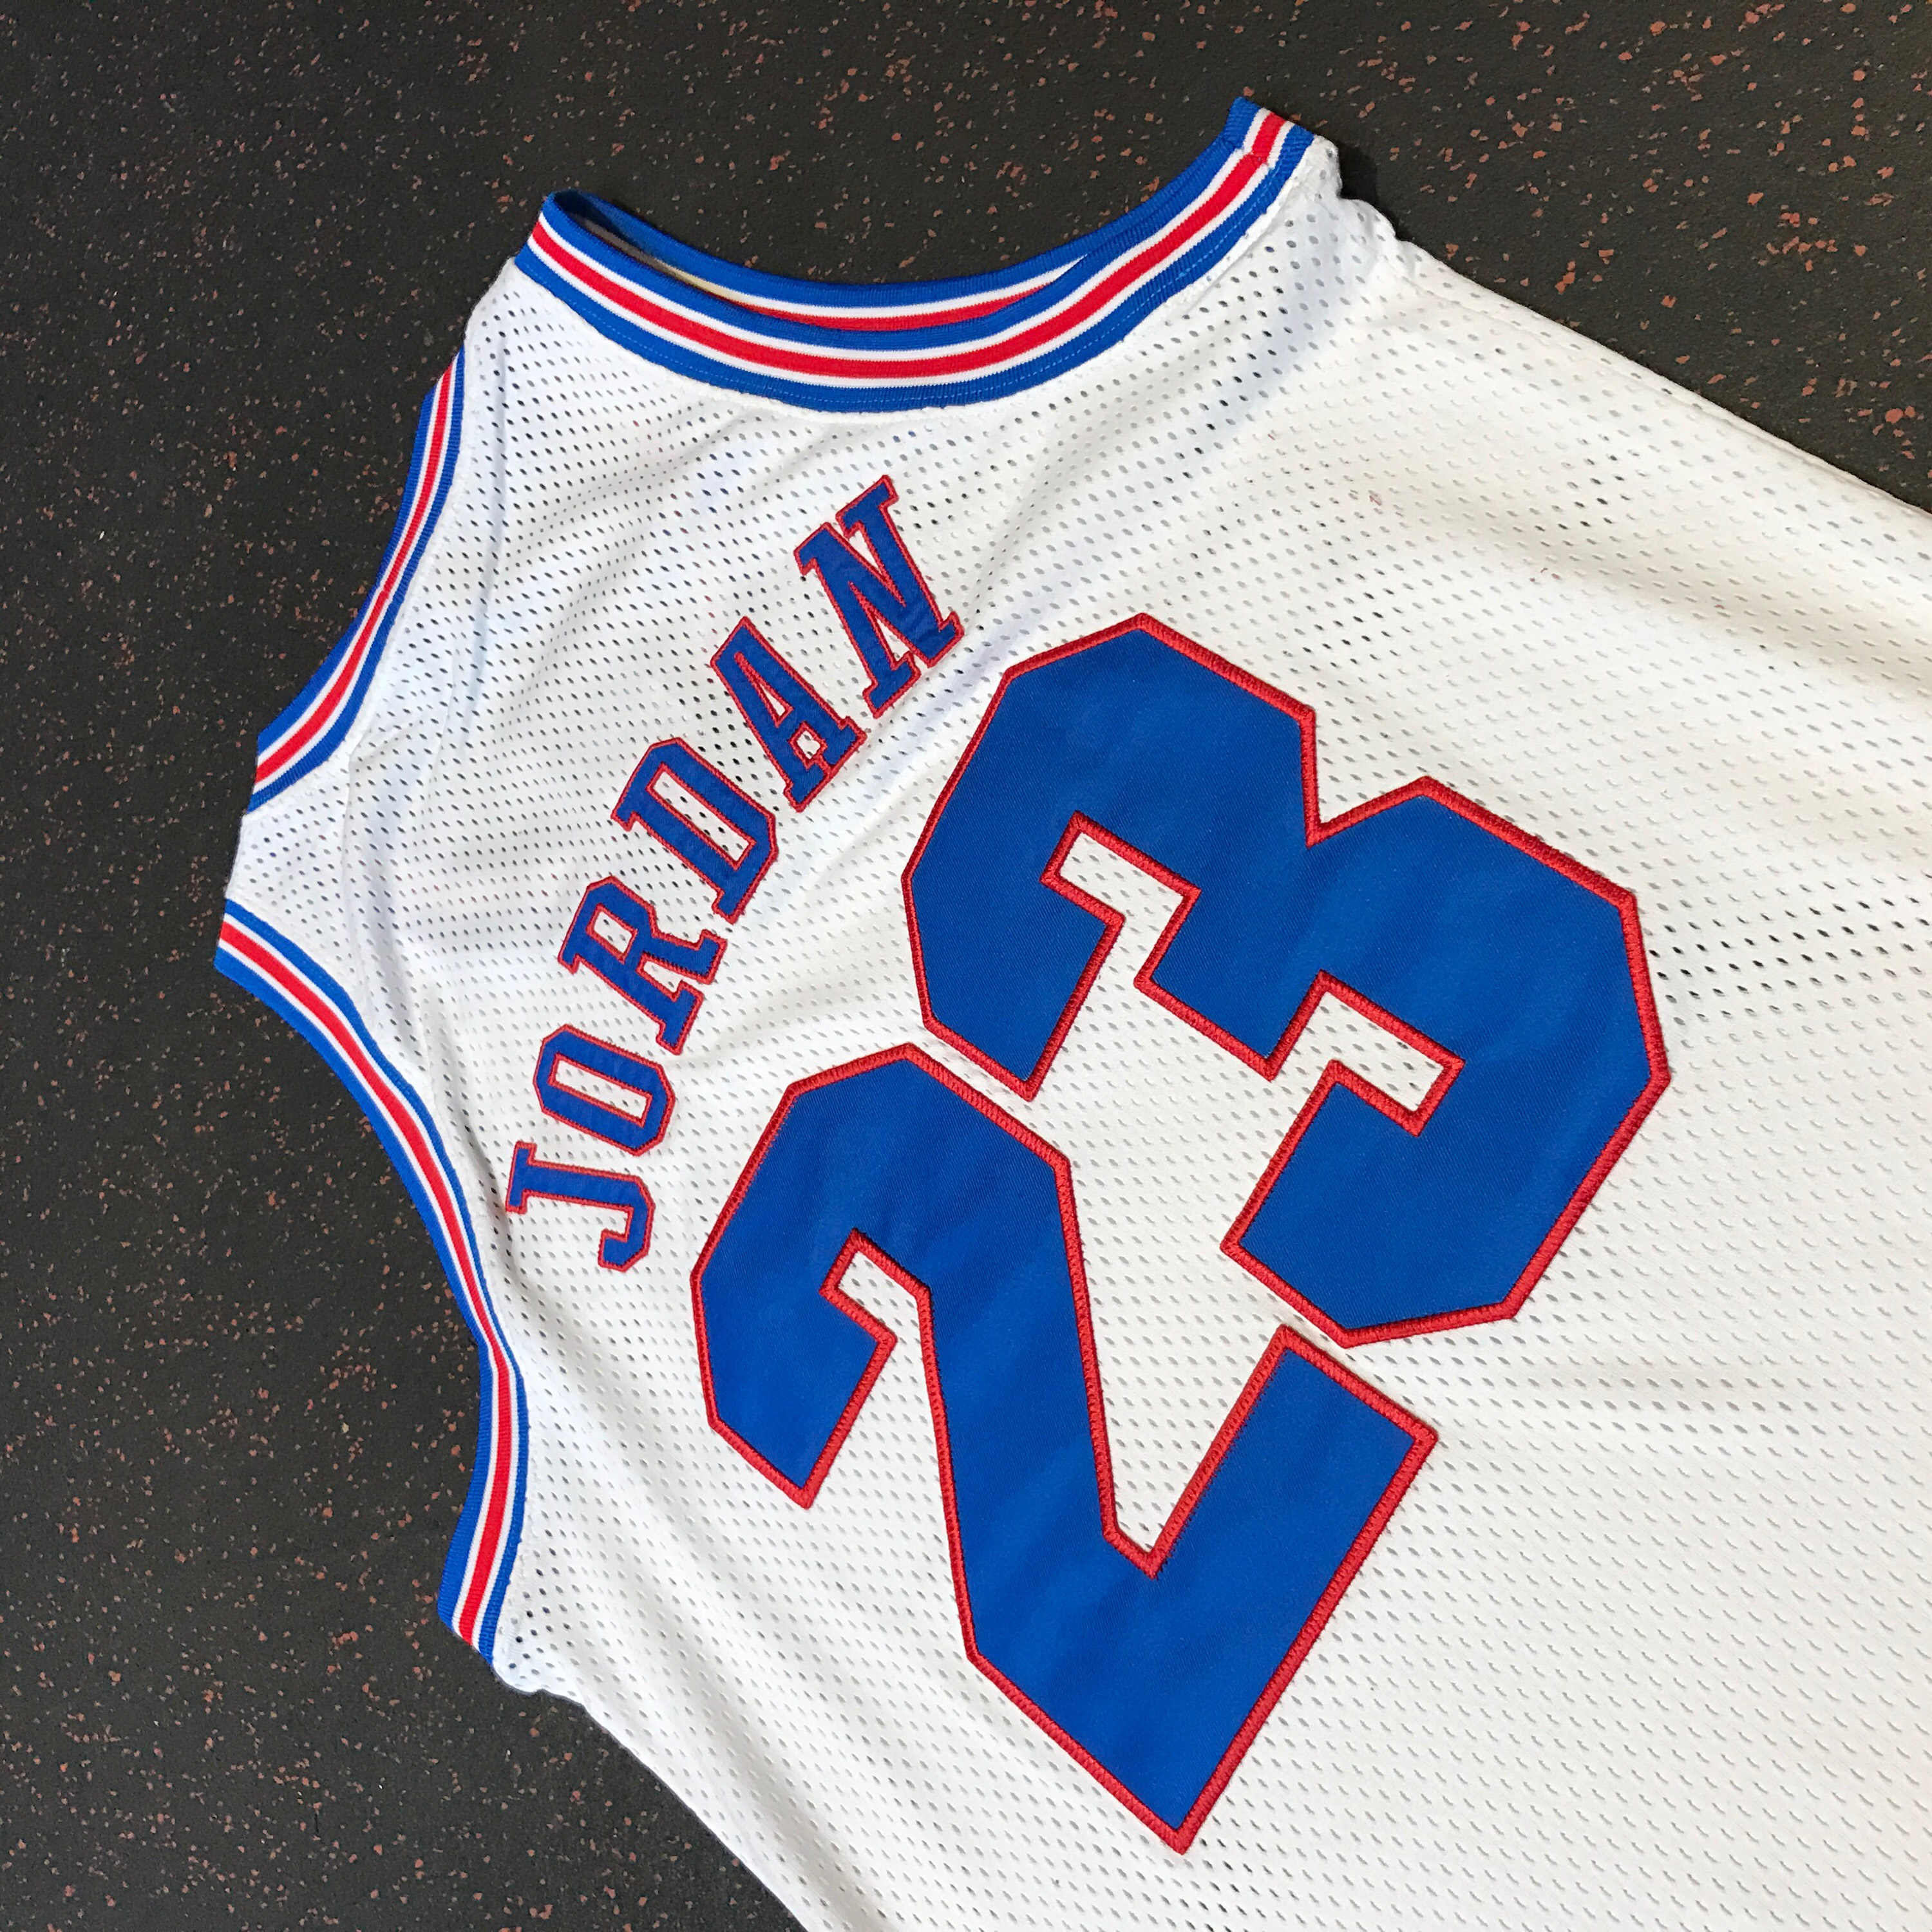 new photos 47db5 dbc45 Space Jam Michael Jordan Jersey Tune Squad | Sole Collector